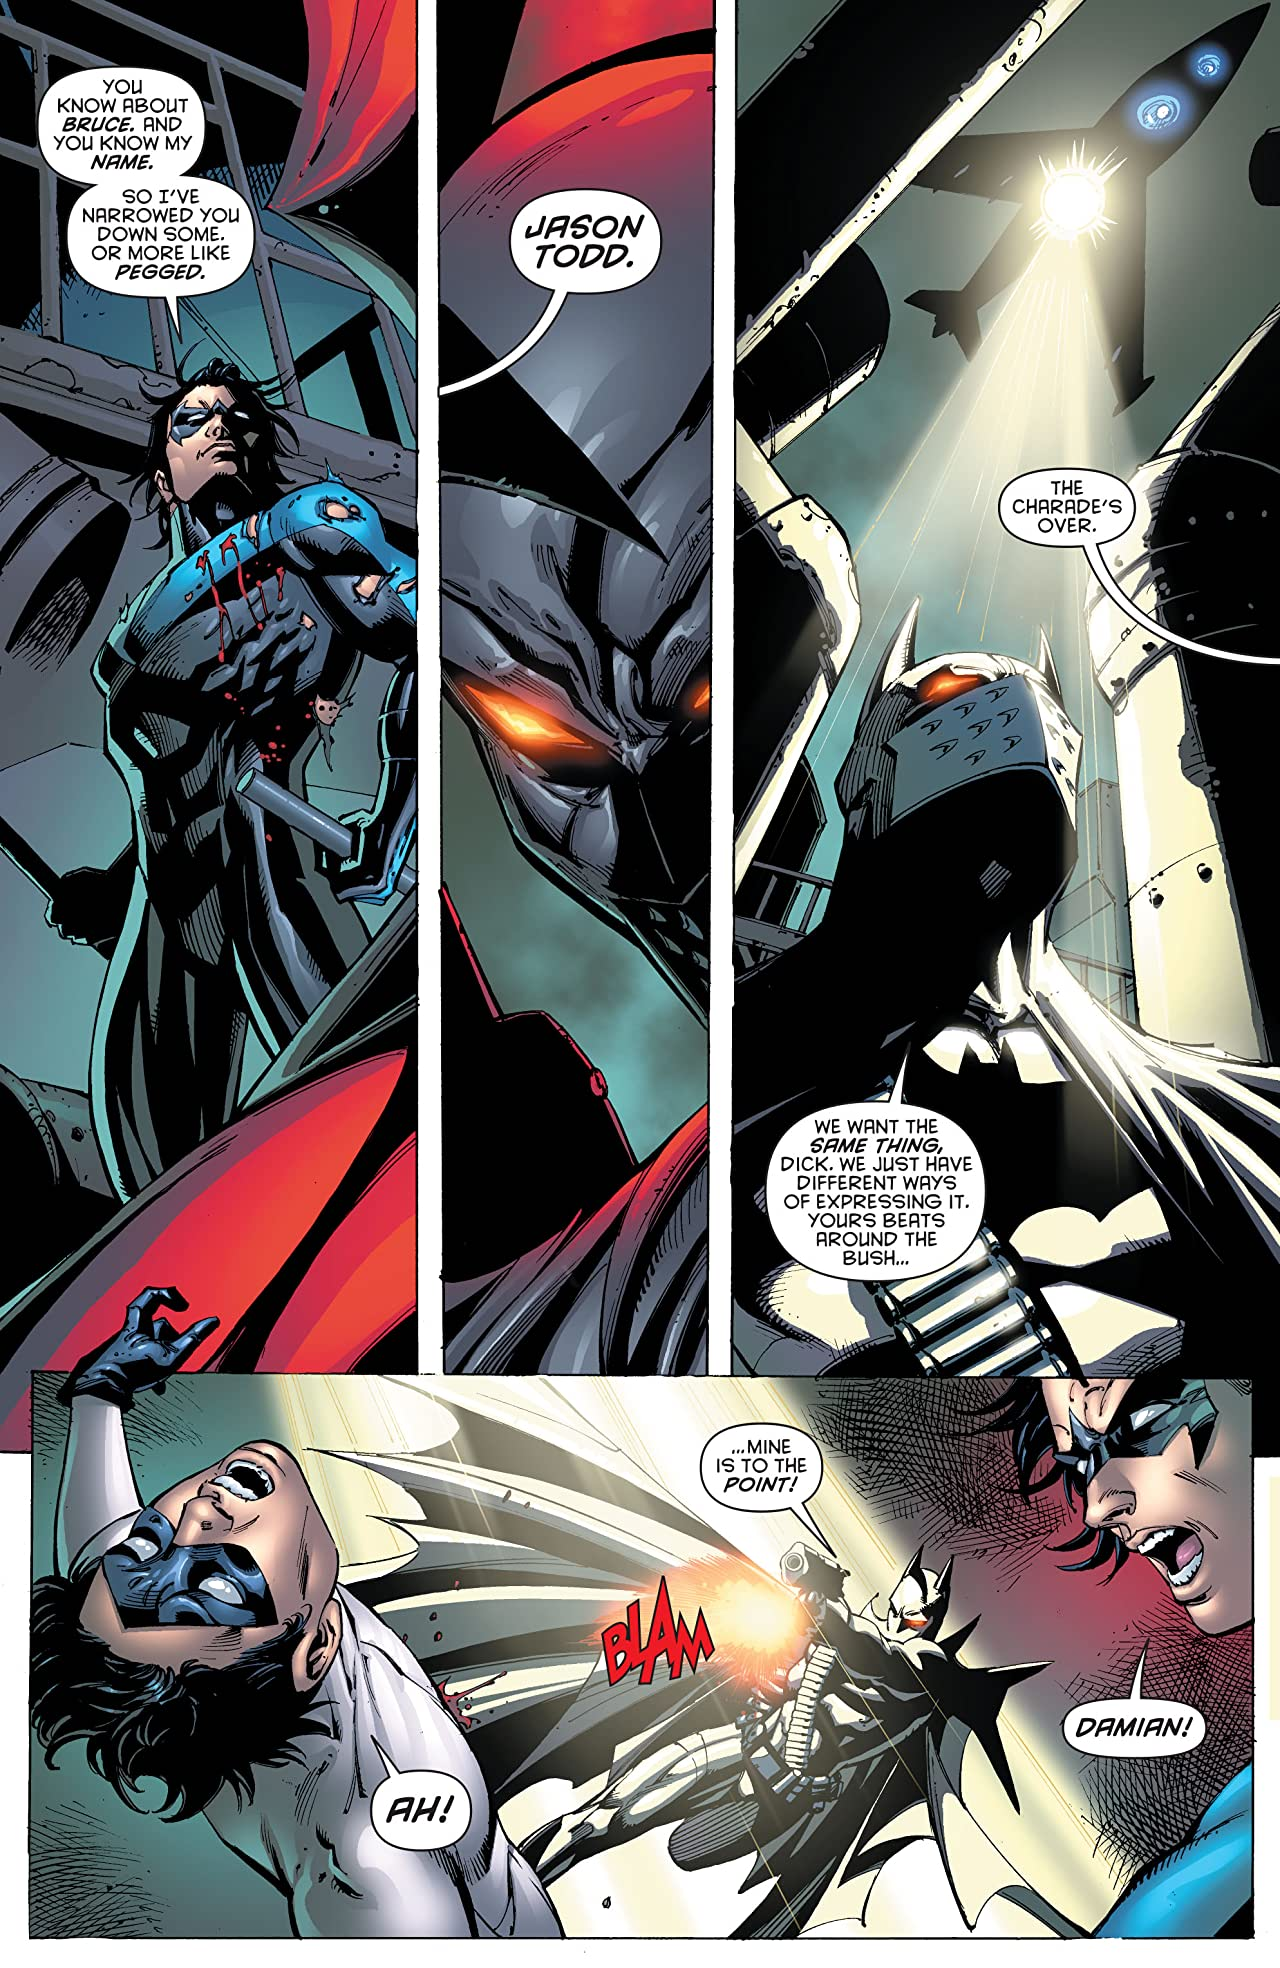 Batman: Battle For the Cowl #2 (of 3)